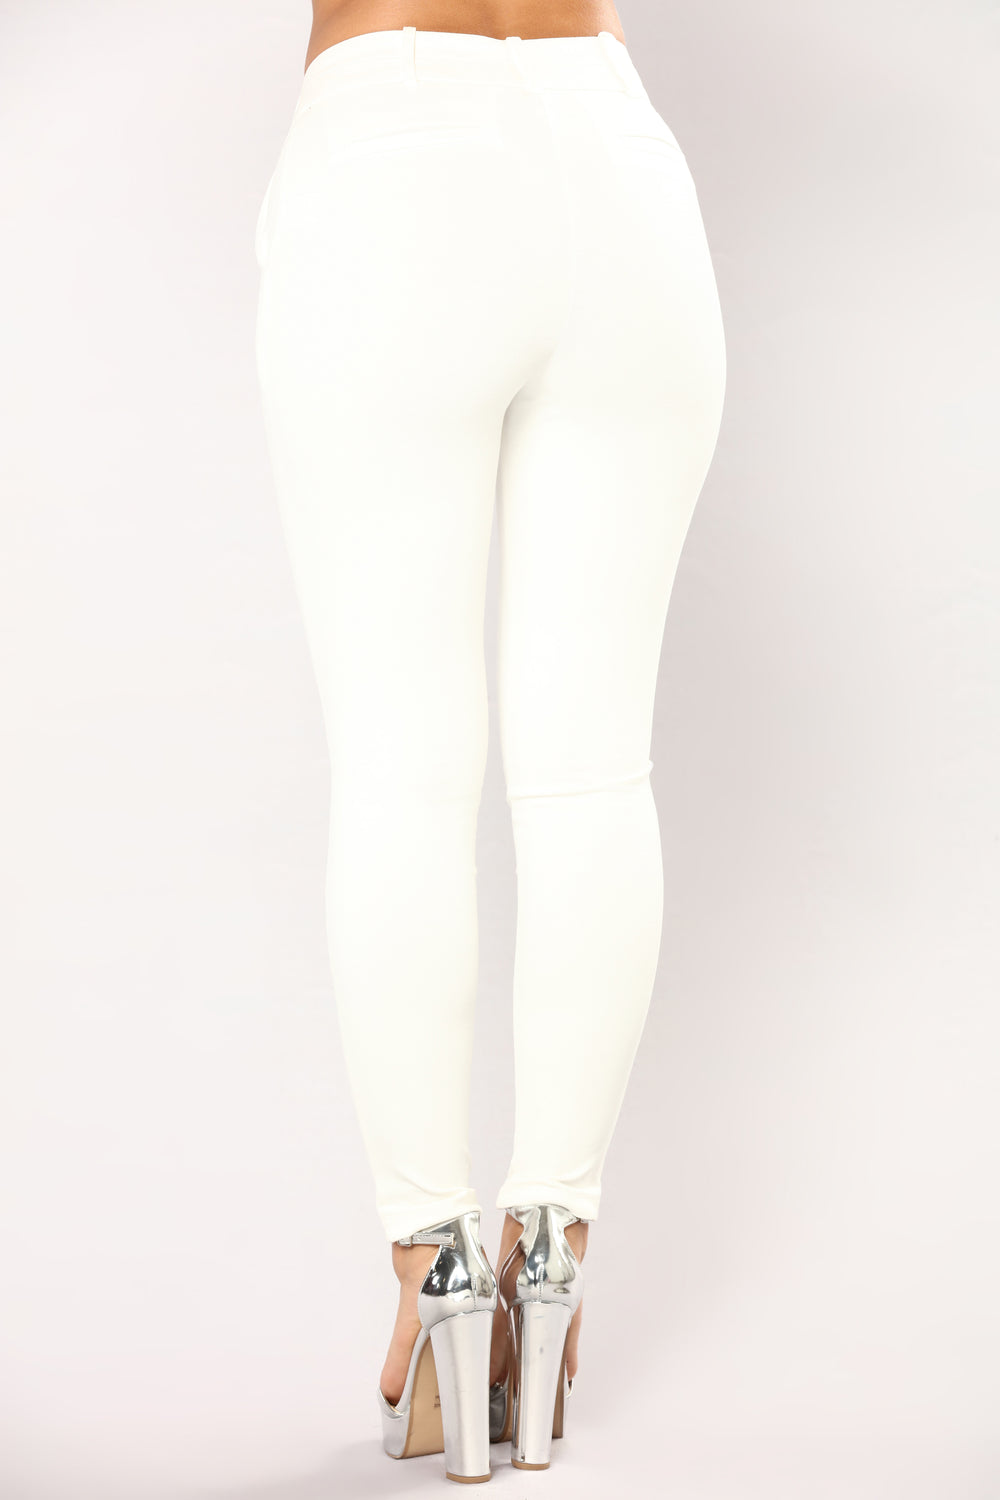 Too Easy Pants - Ivory